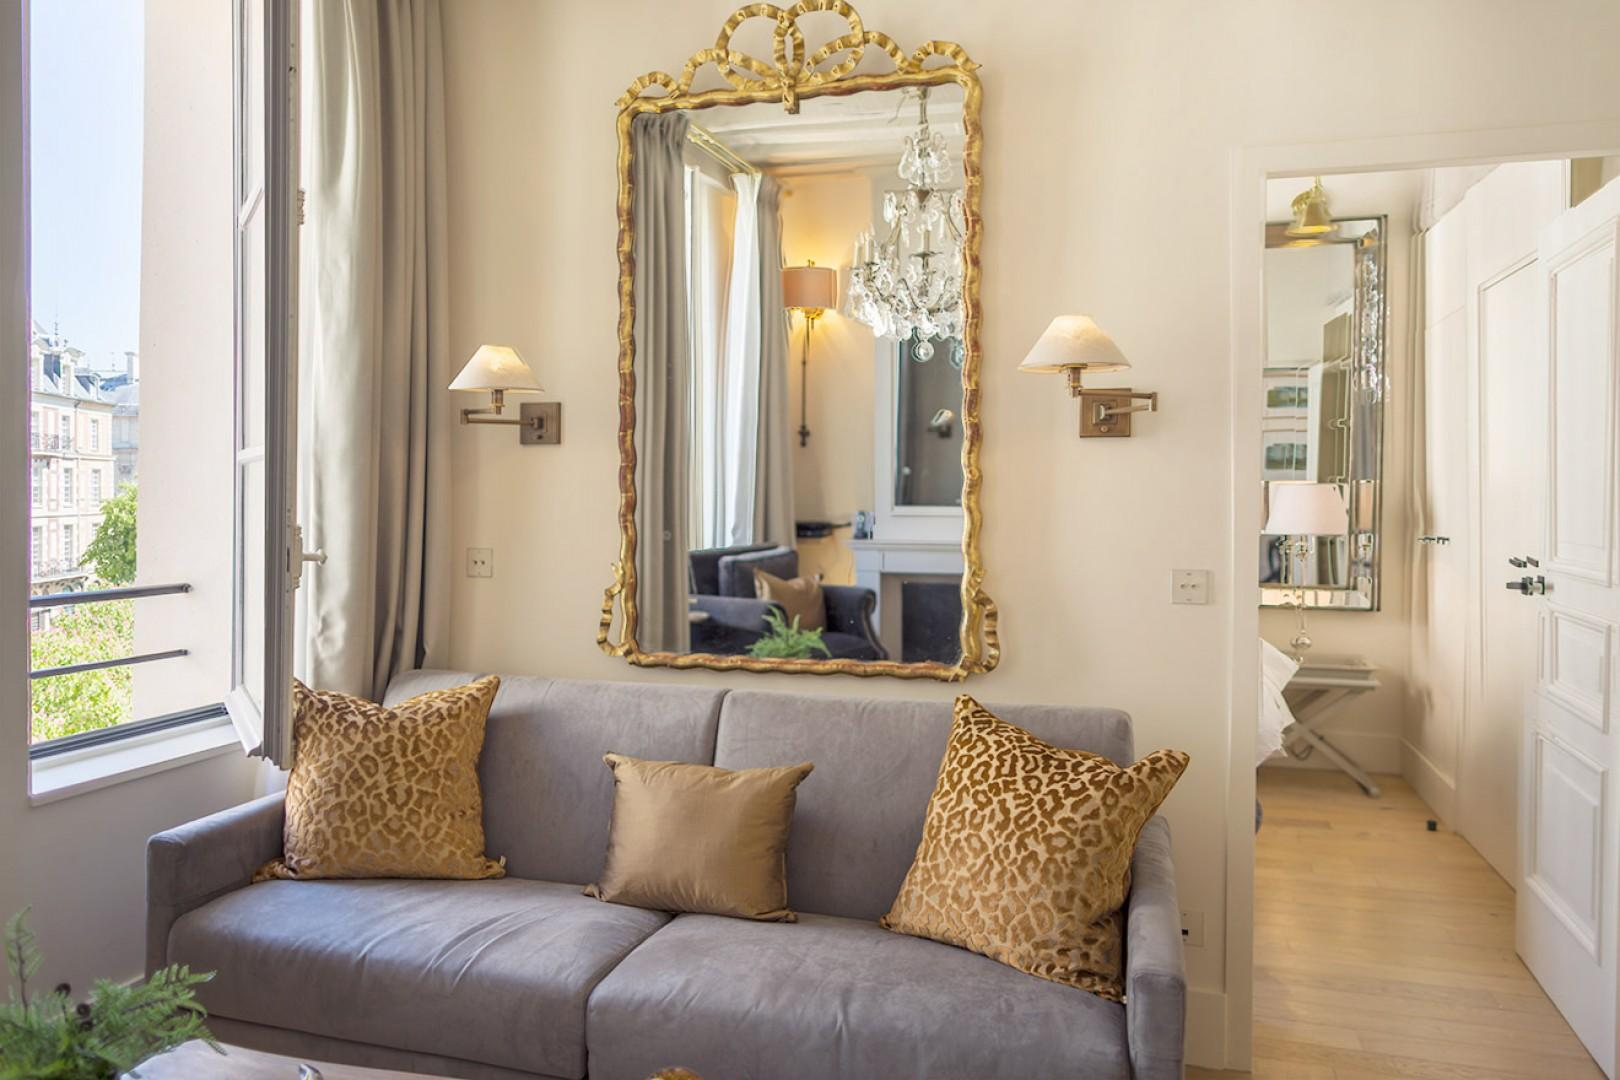 Enjoy views of Place Dauphine from the elegant sofa.